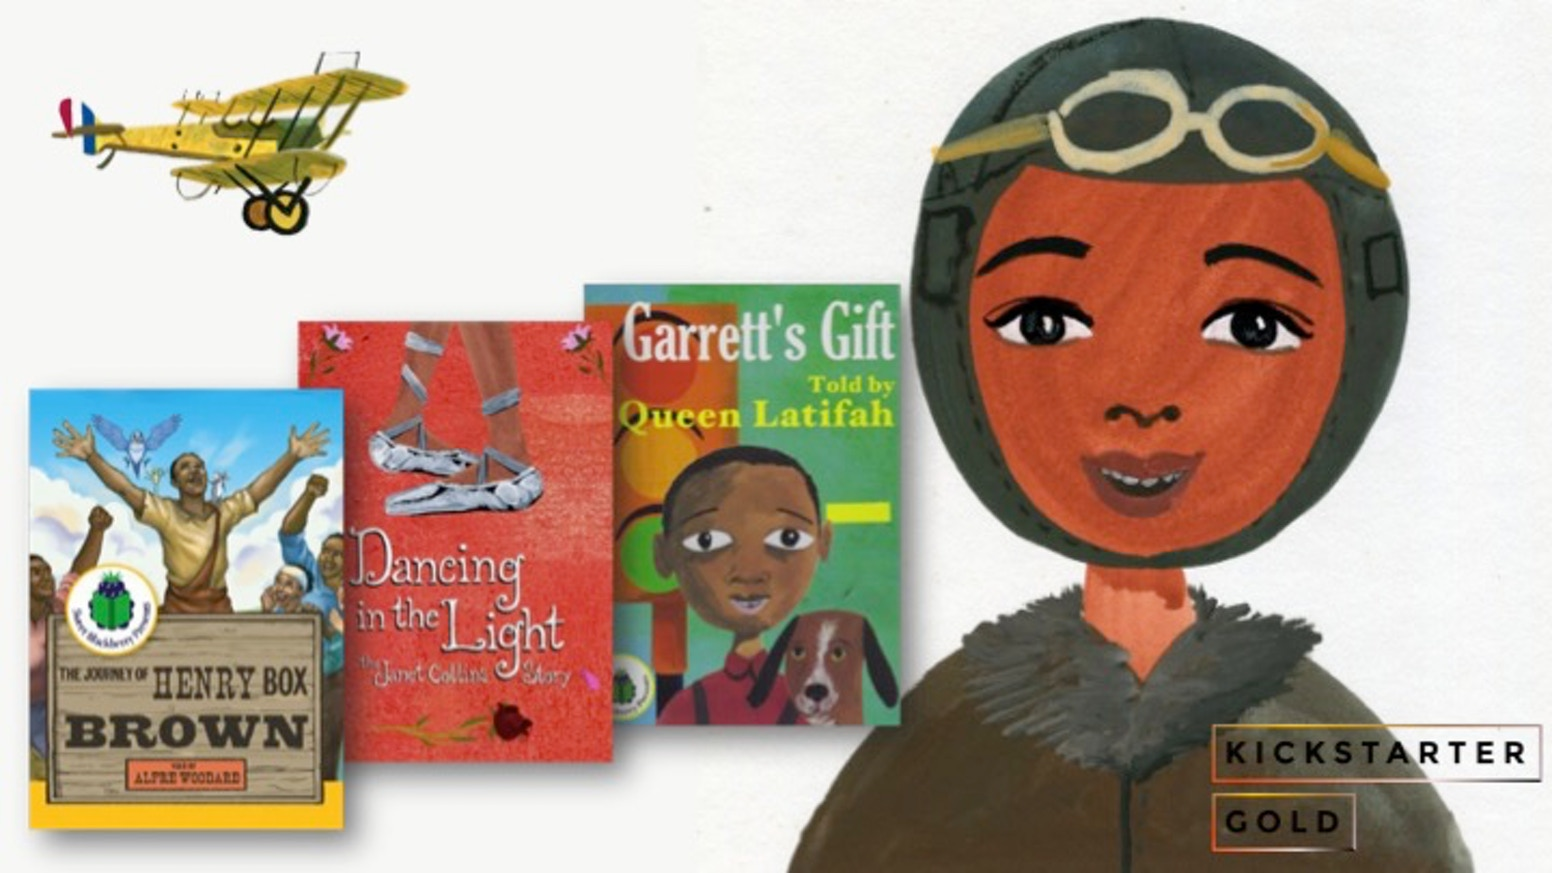 Animated short on Bessie Coleman, the first African-American woman to become a pilot.